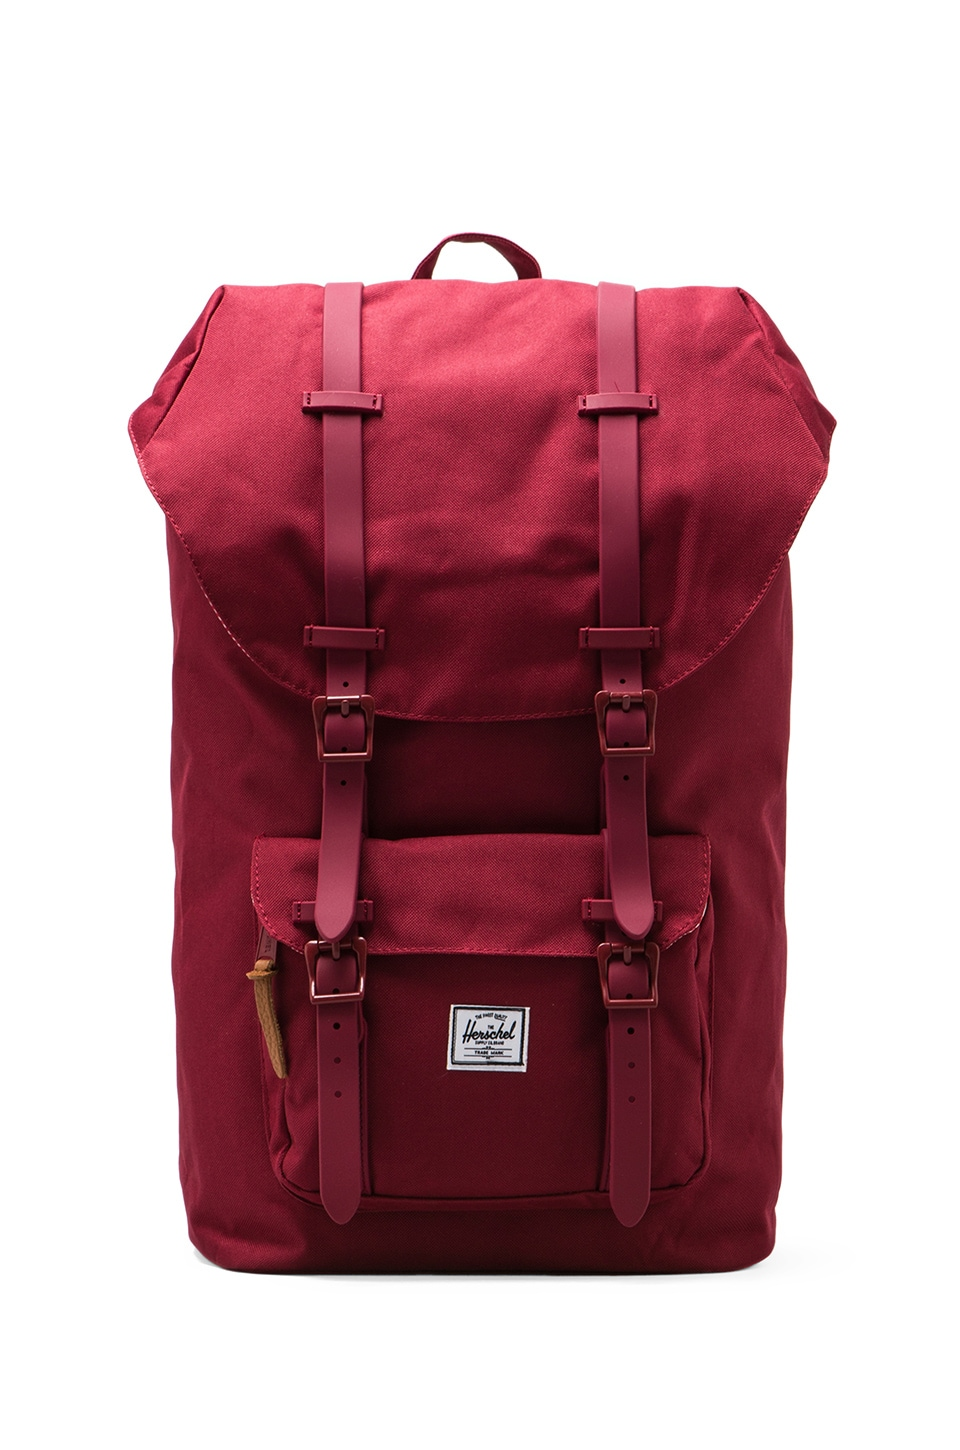 Herschel Supply Co. Sac à dos Little America en Bordeaux